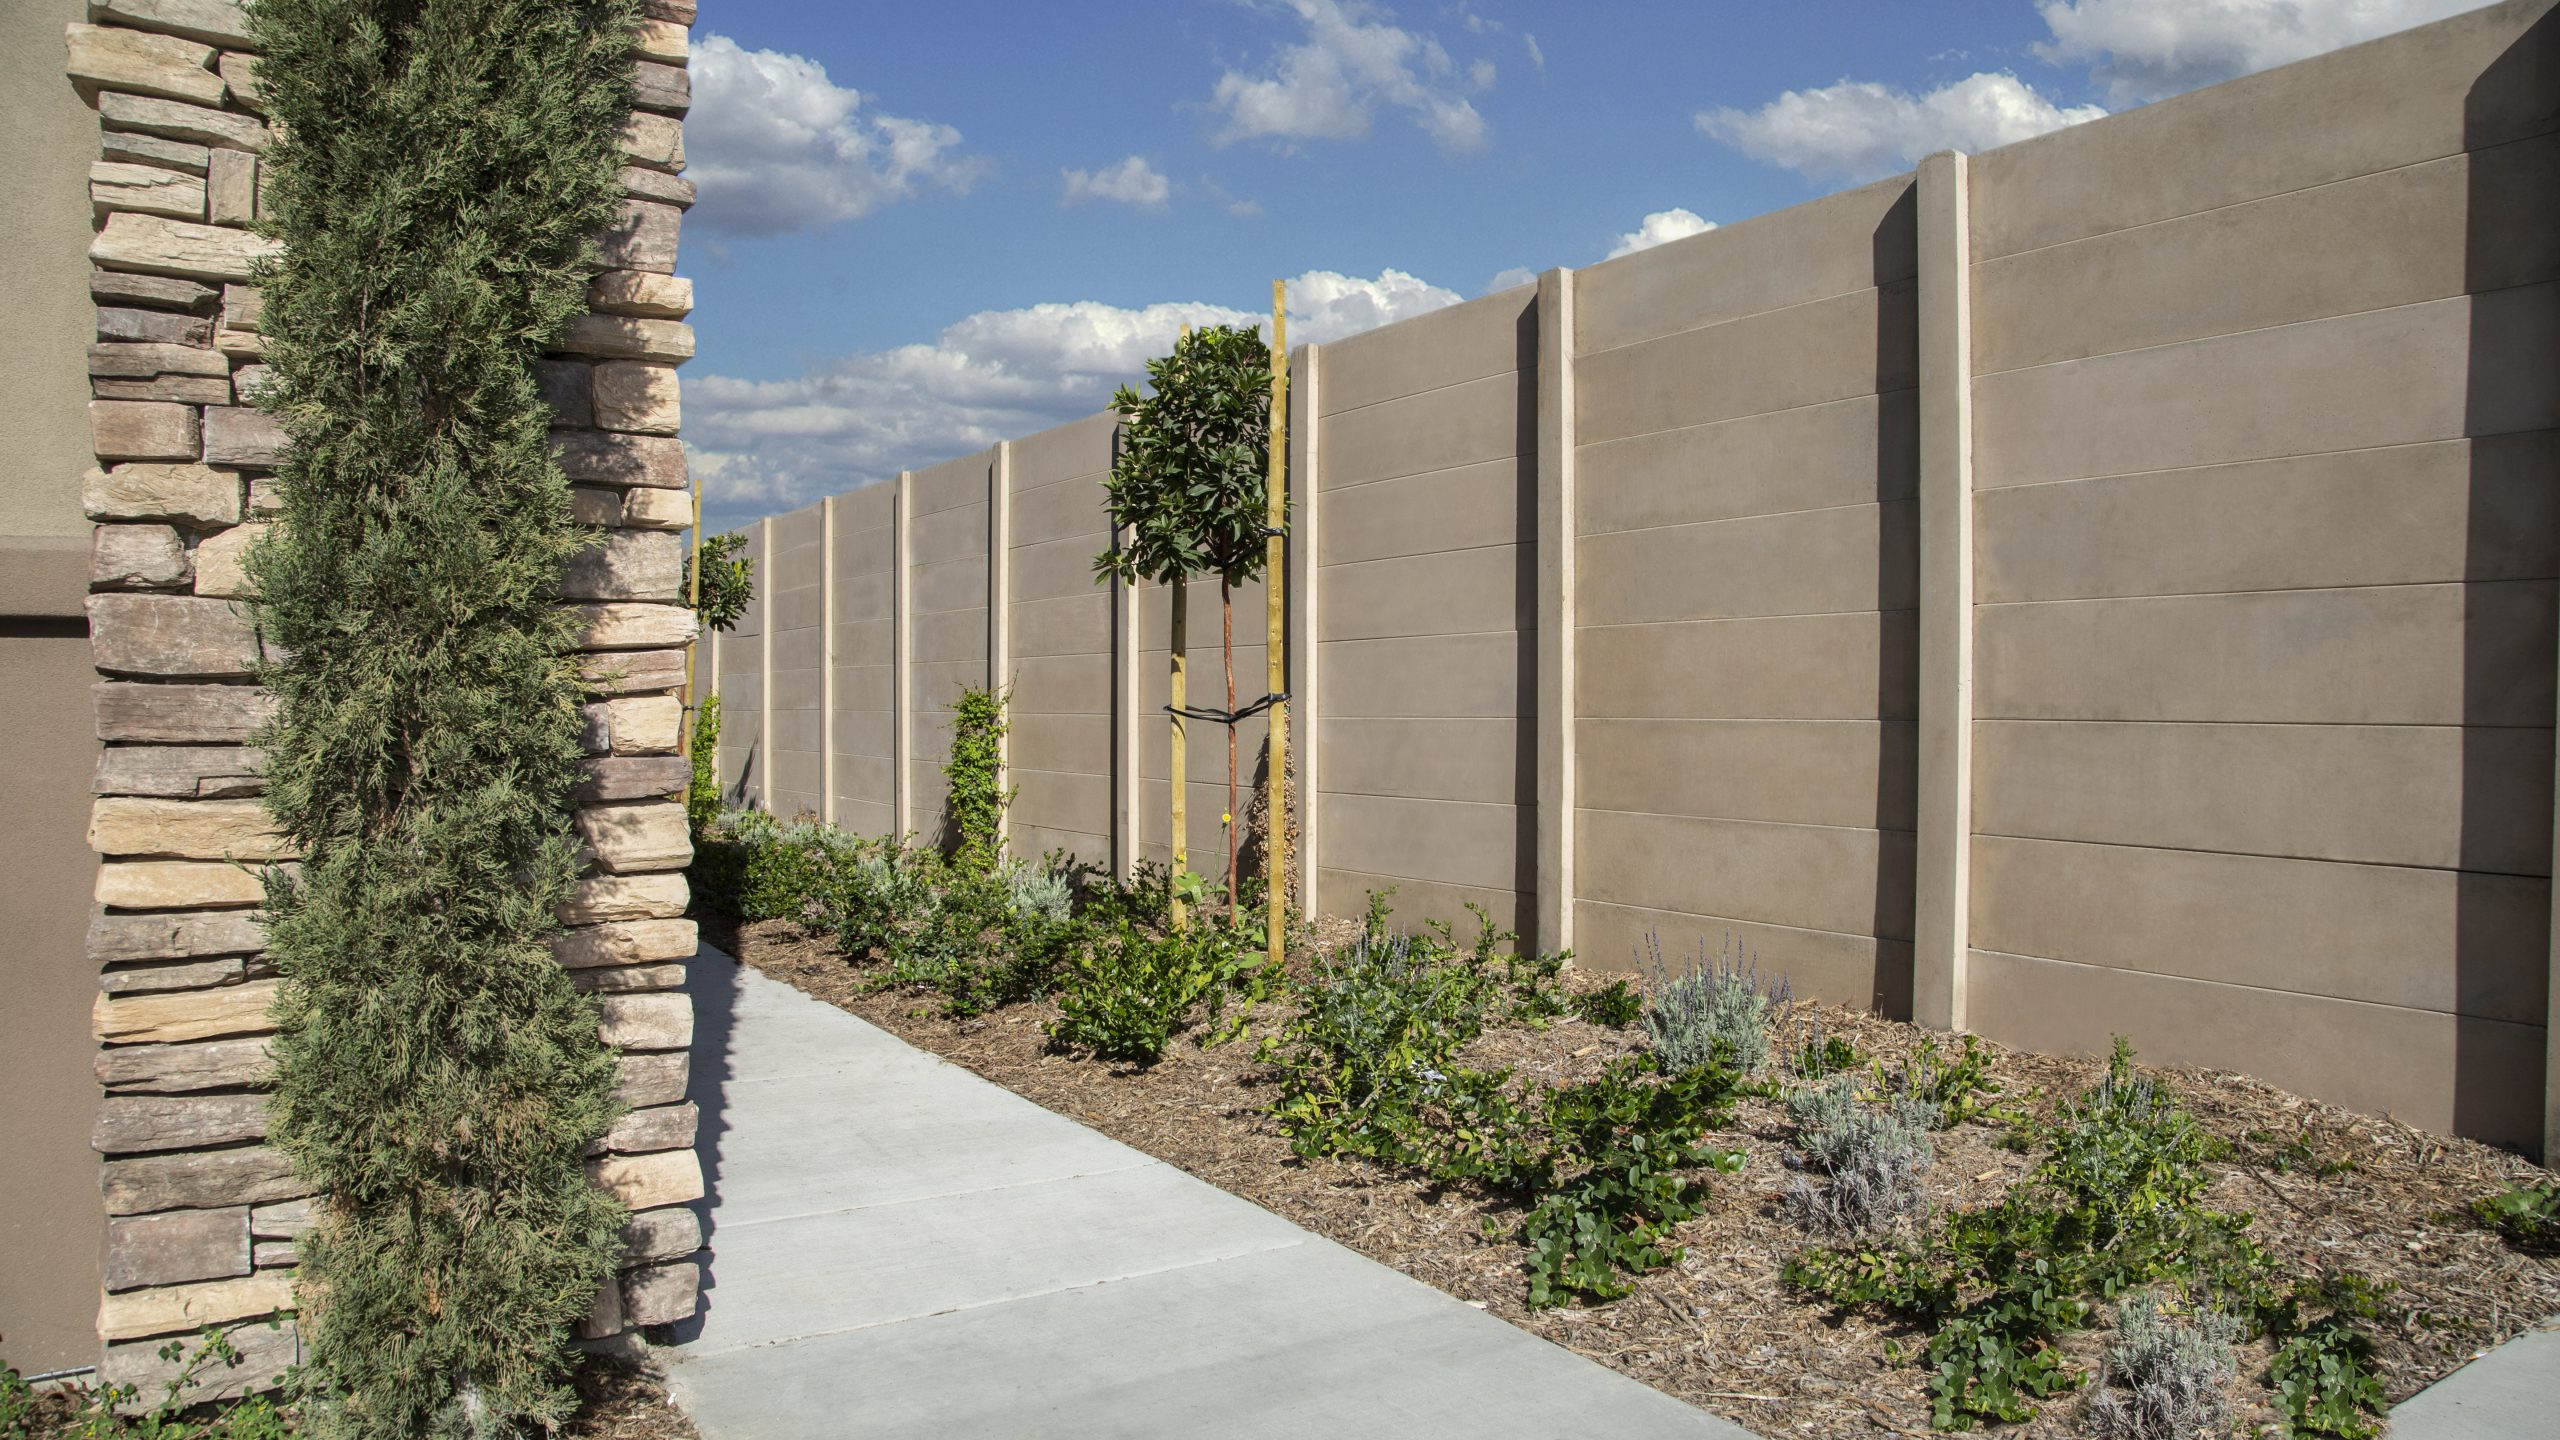 Smoothstone precast concrete outside of a residential area